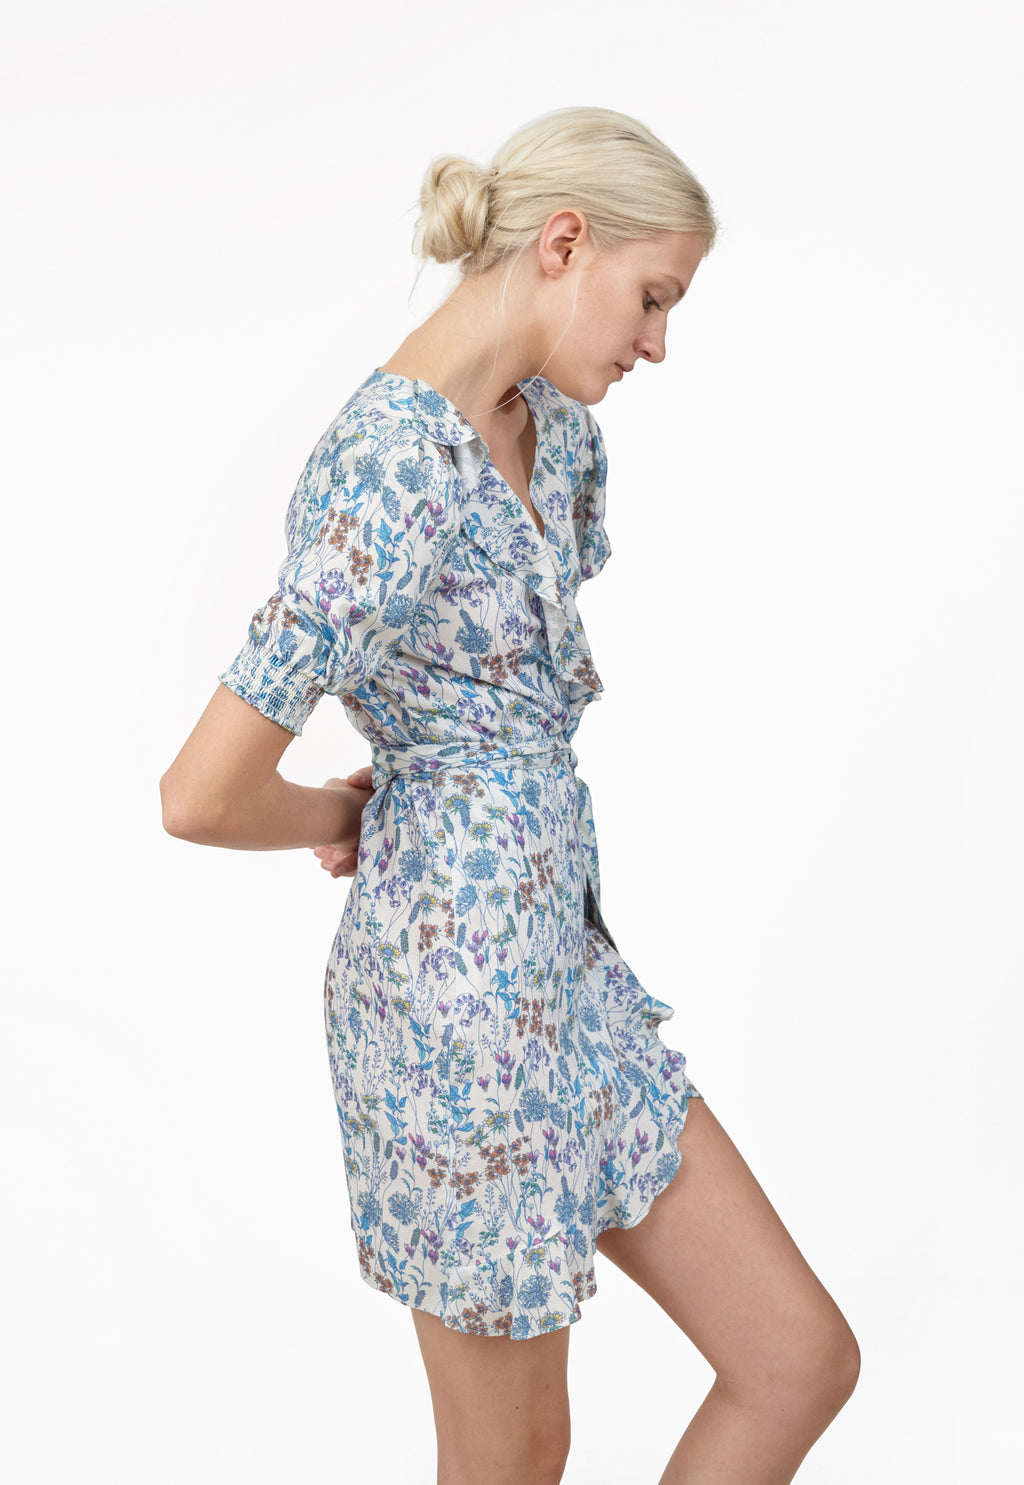 6 Shore Road Sea Ripple Wrap Dress Floral Dress in 0,2,4,6,8,10,12 - Summer 2018 Collection